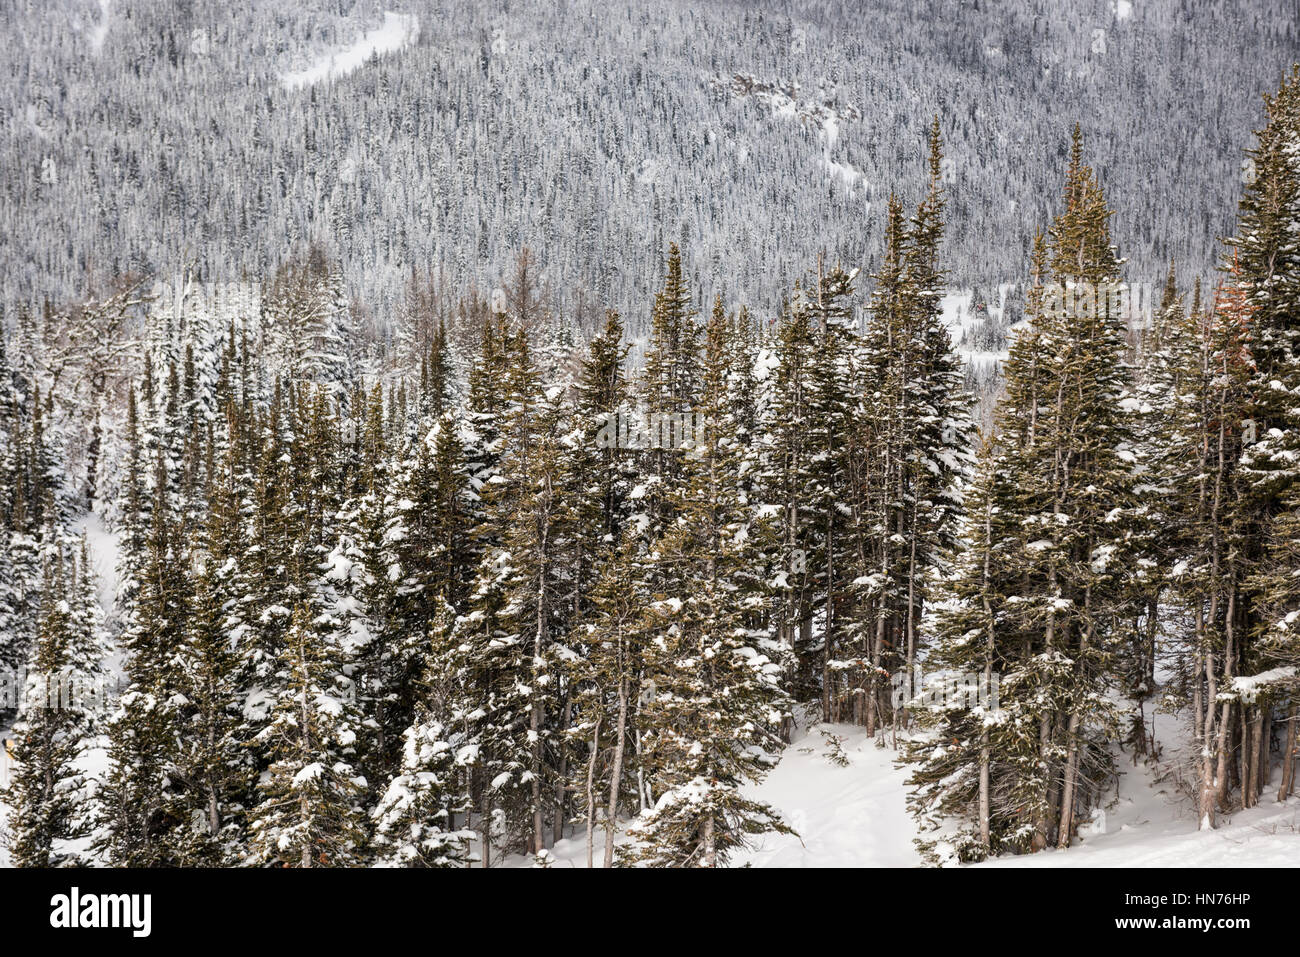 Snowy pine trees on the alp mountain slope during winter - Stock Image